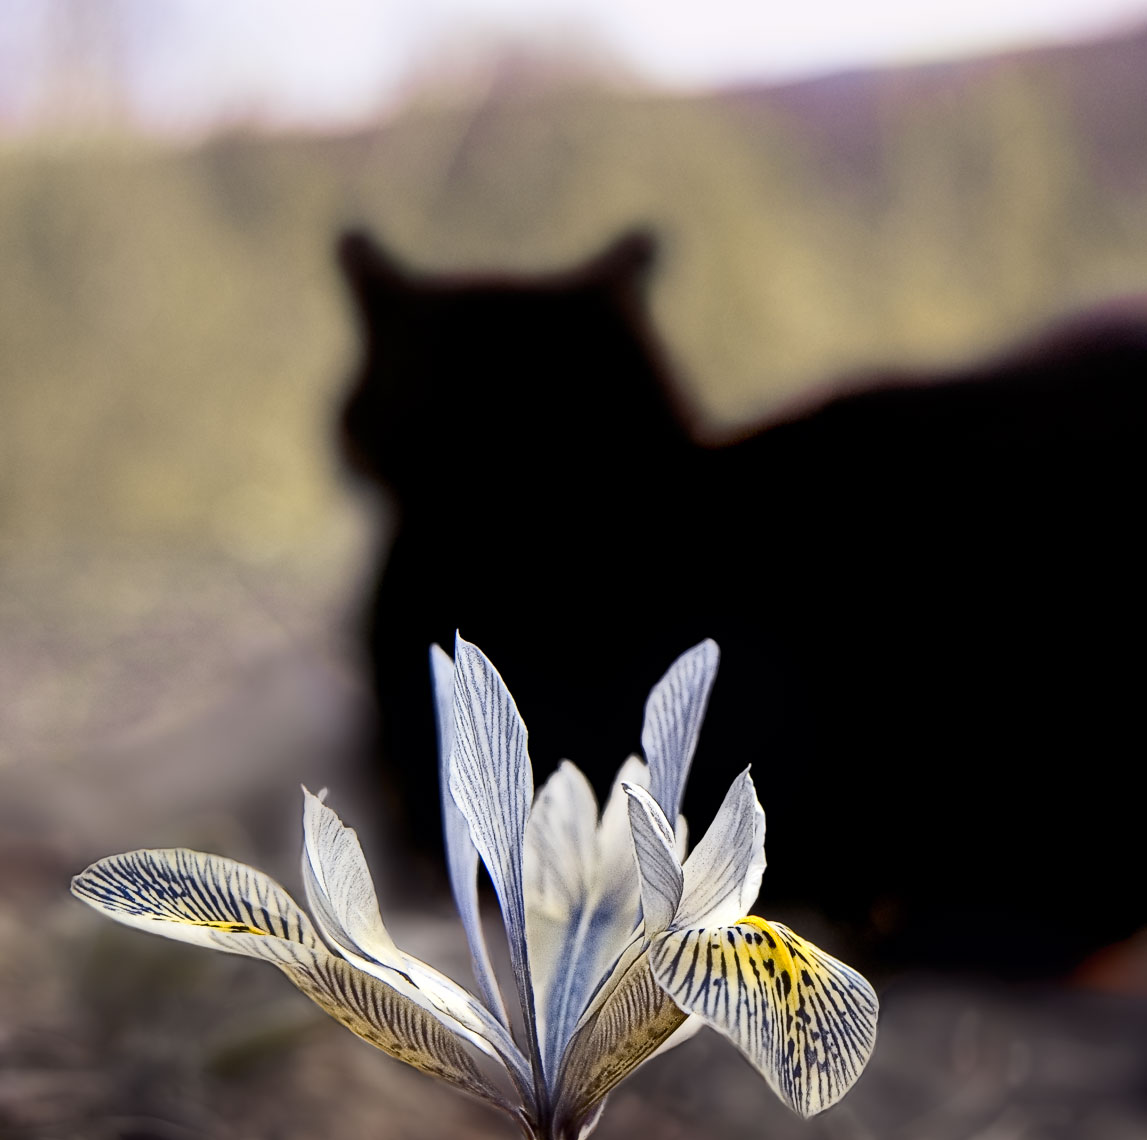 David Lebe; Early Spring Contemplation, 2007, cat photograph